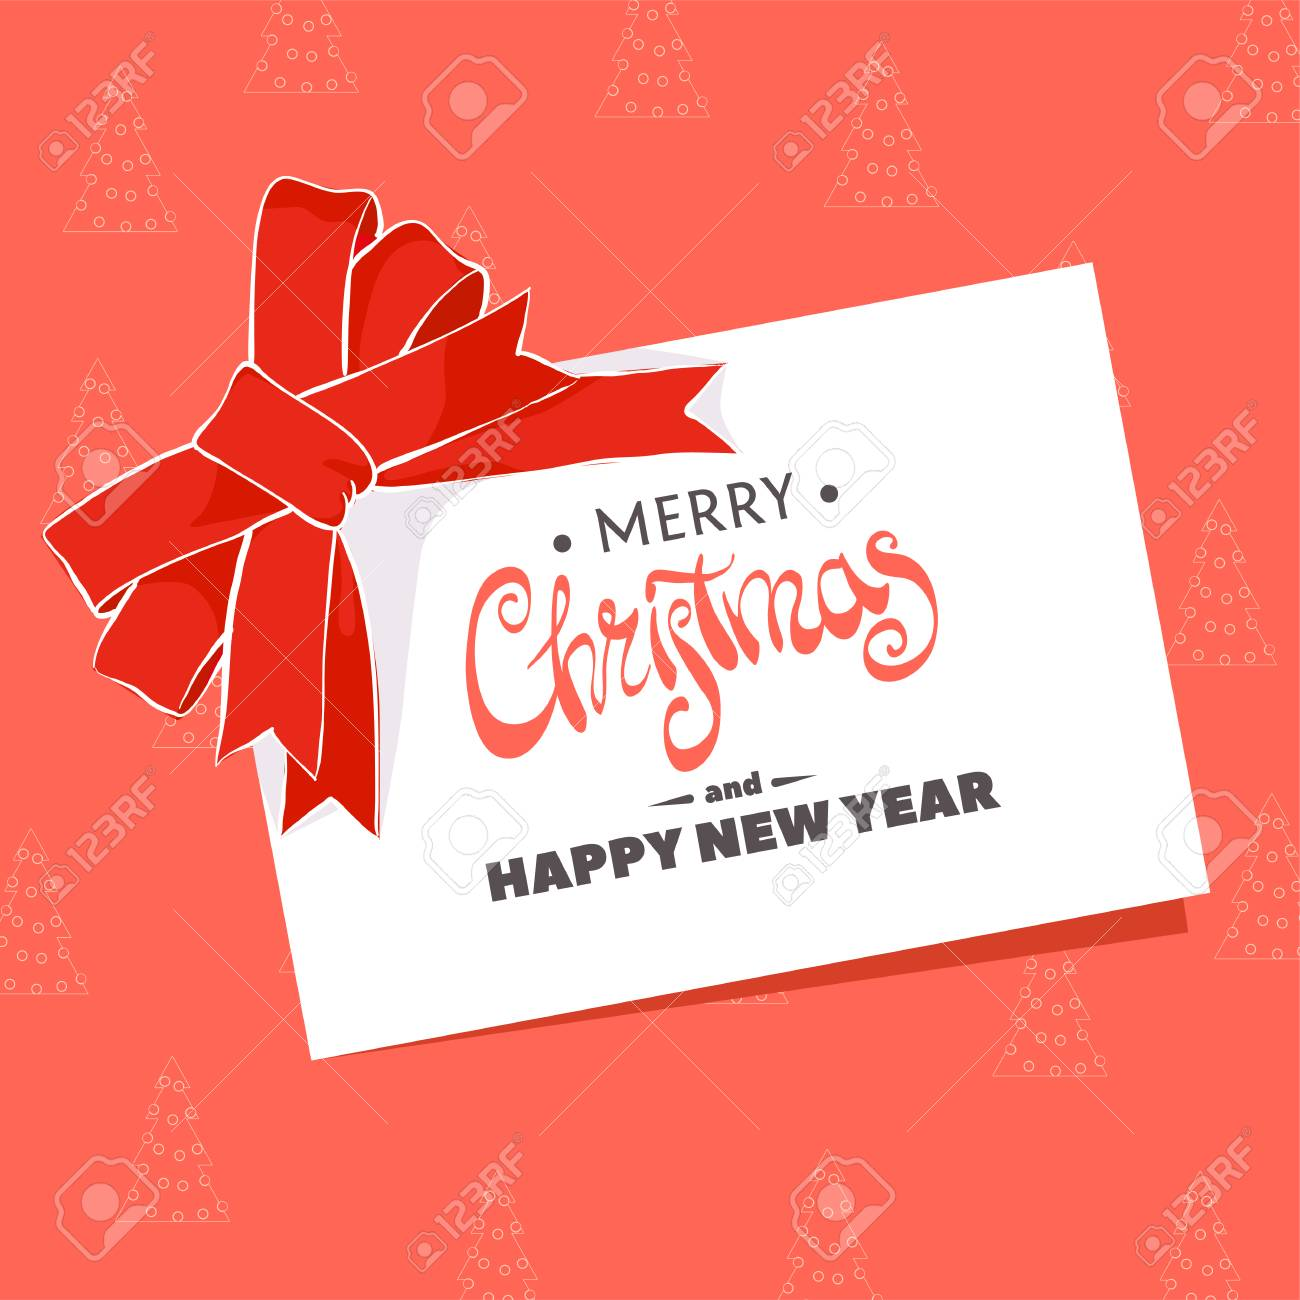 Christmas greeting card with the words merry christmas on a red christmas greeting card with the words merry christmas on a red background stock vector 68959680 m4hsunfo